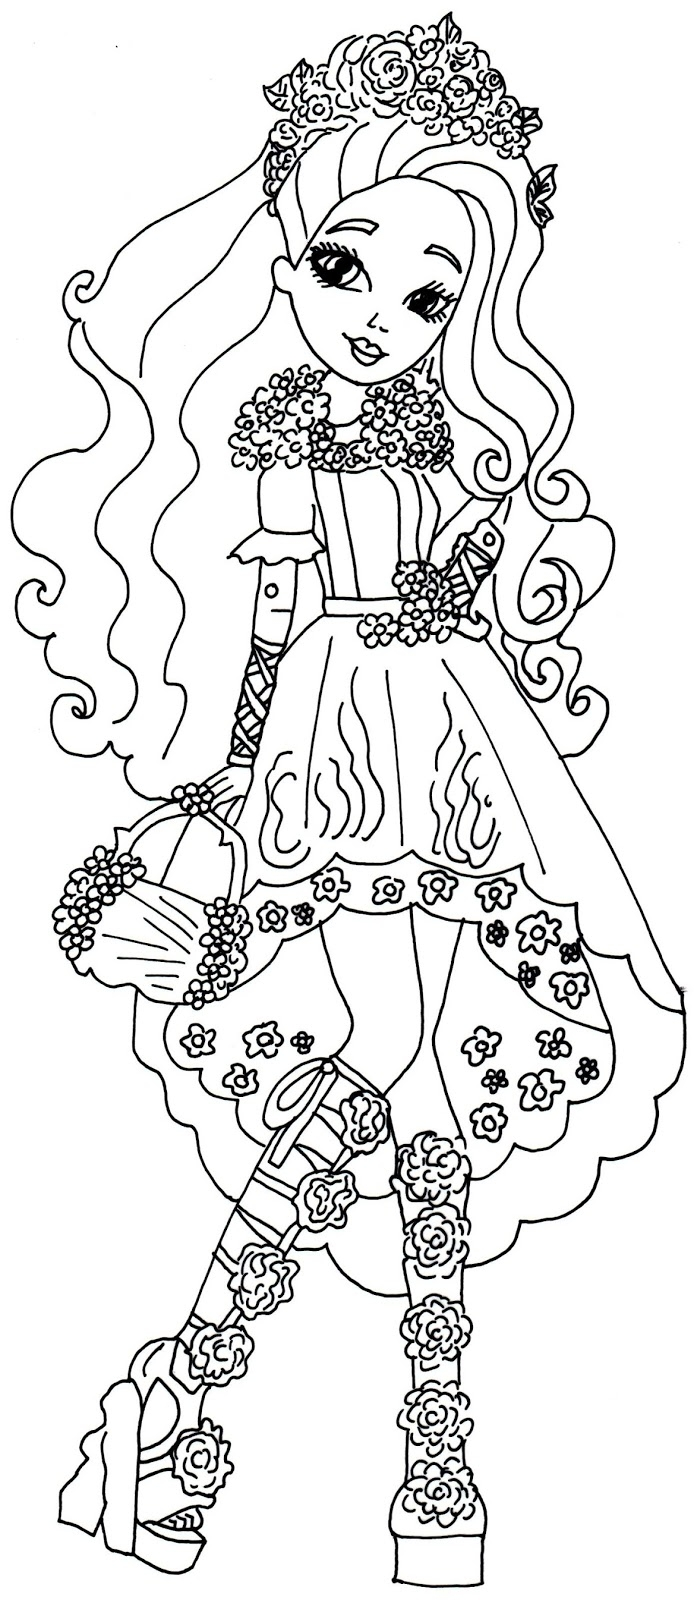 694x1600 ever after high dragon games coloring pages gallery free